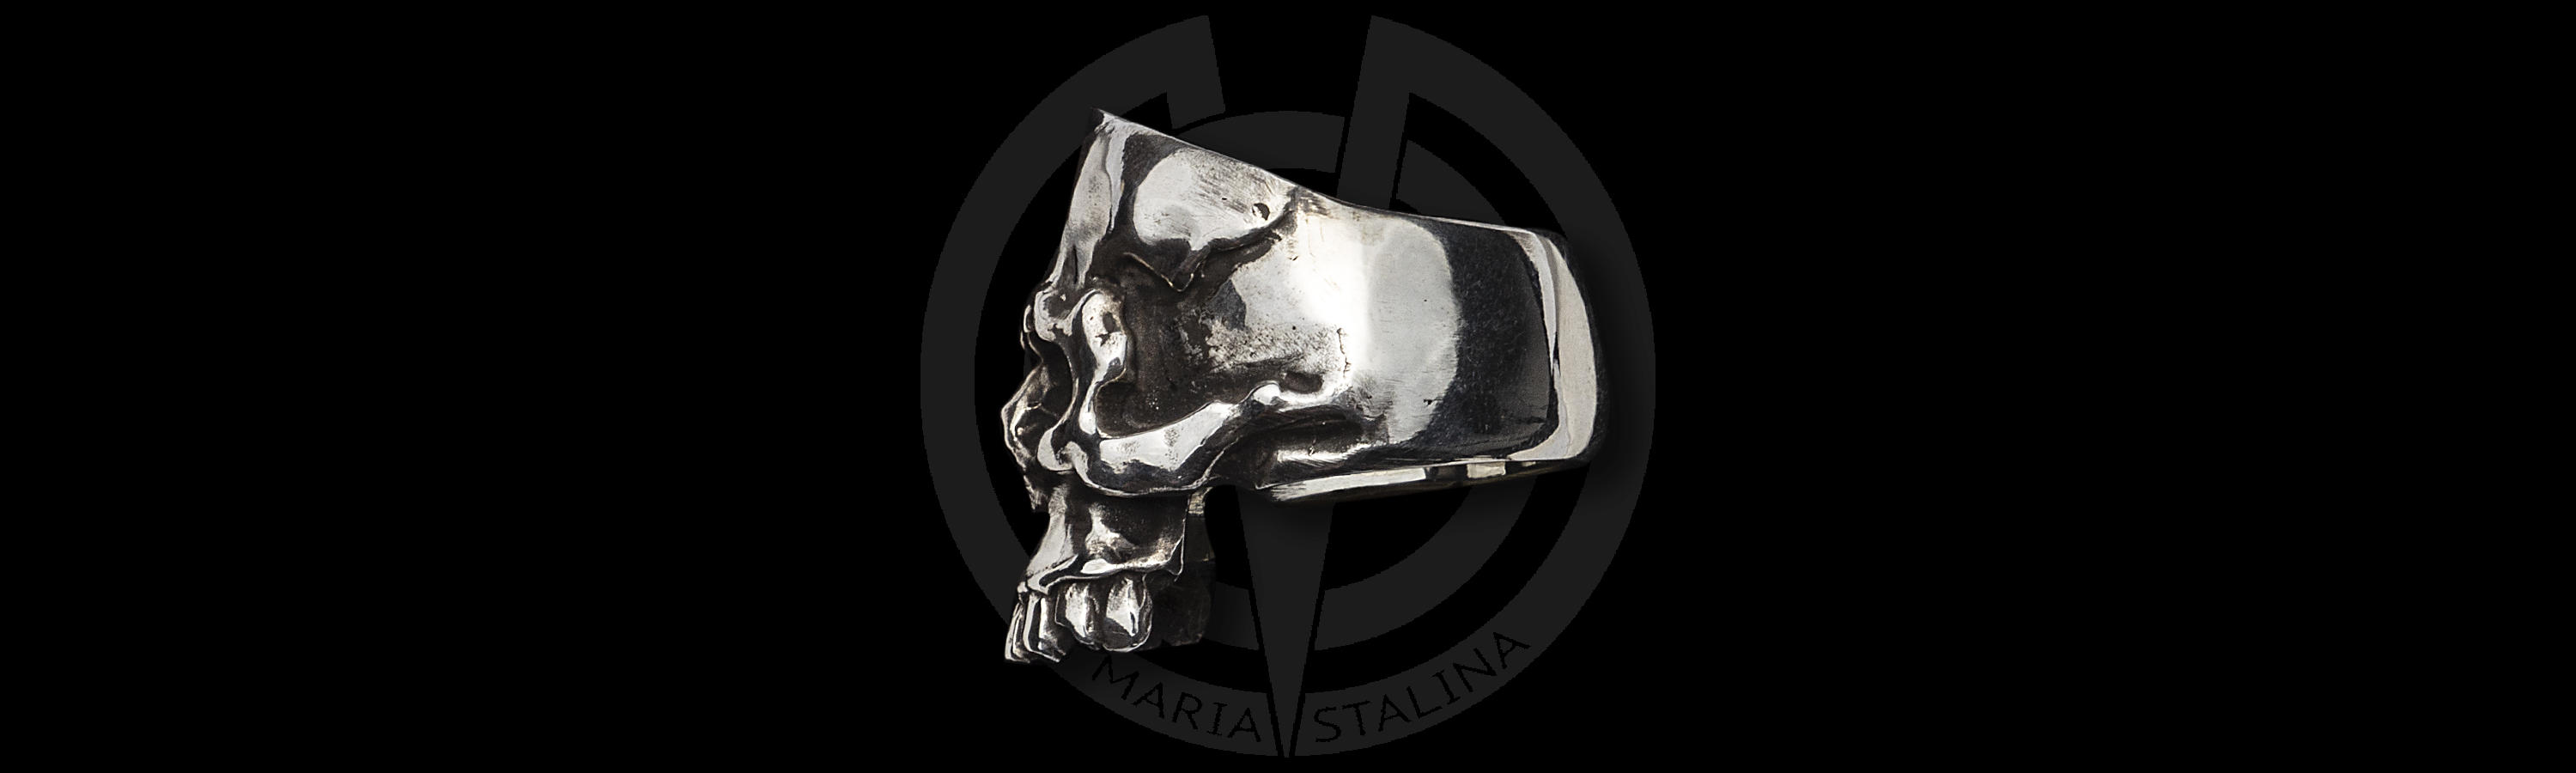 White metal ring Skull